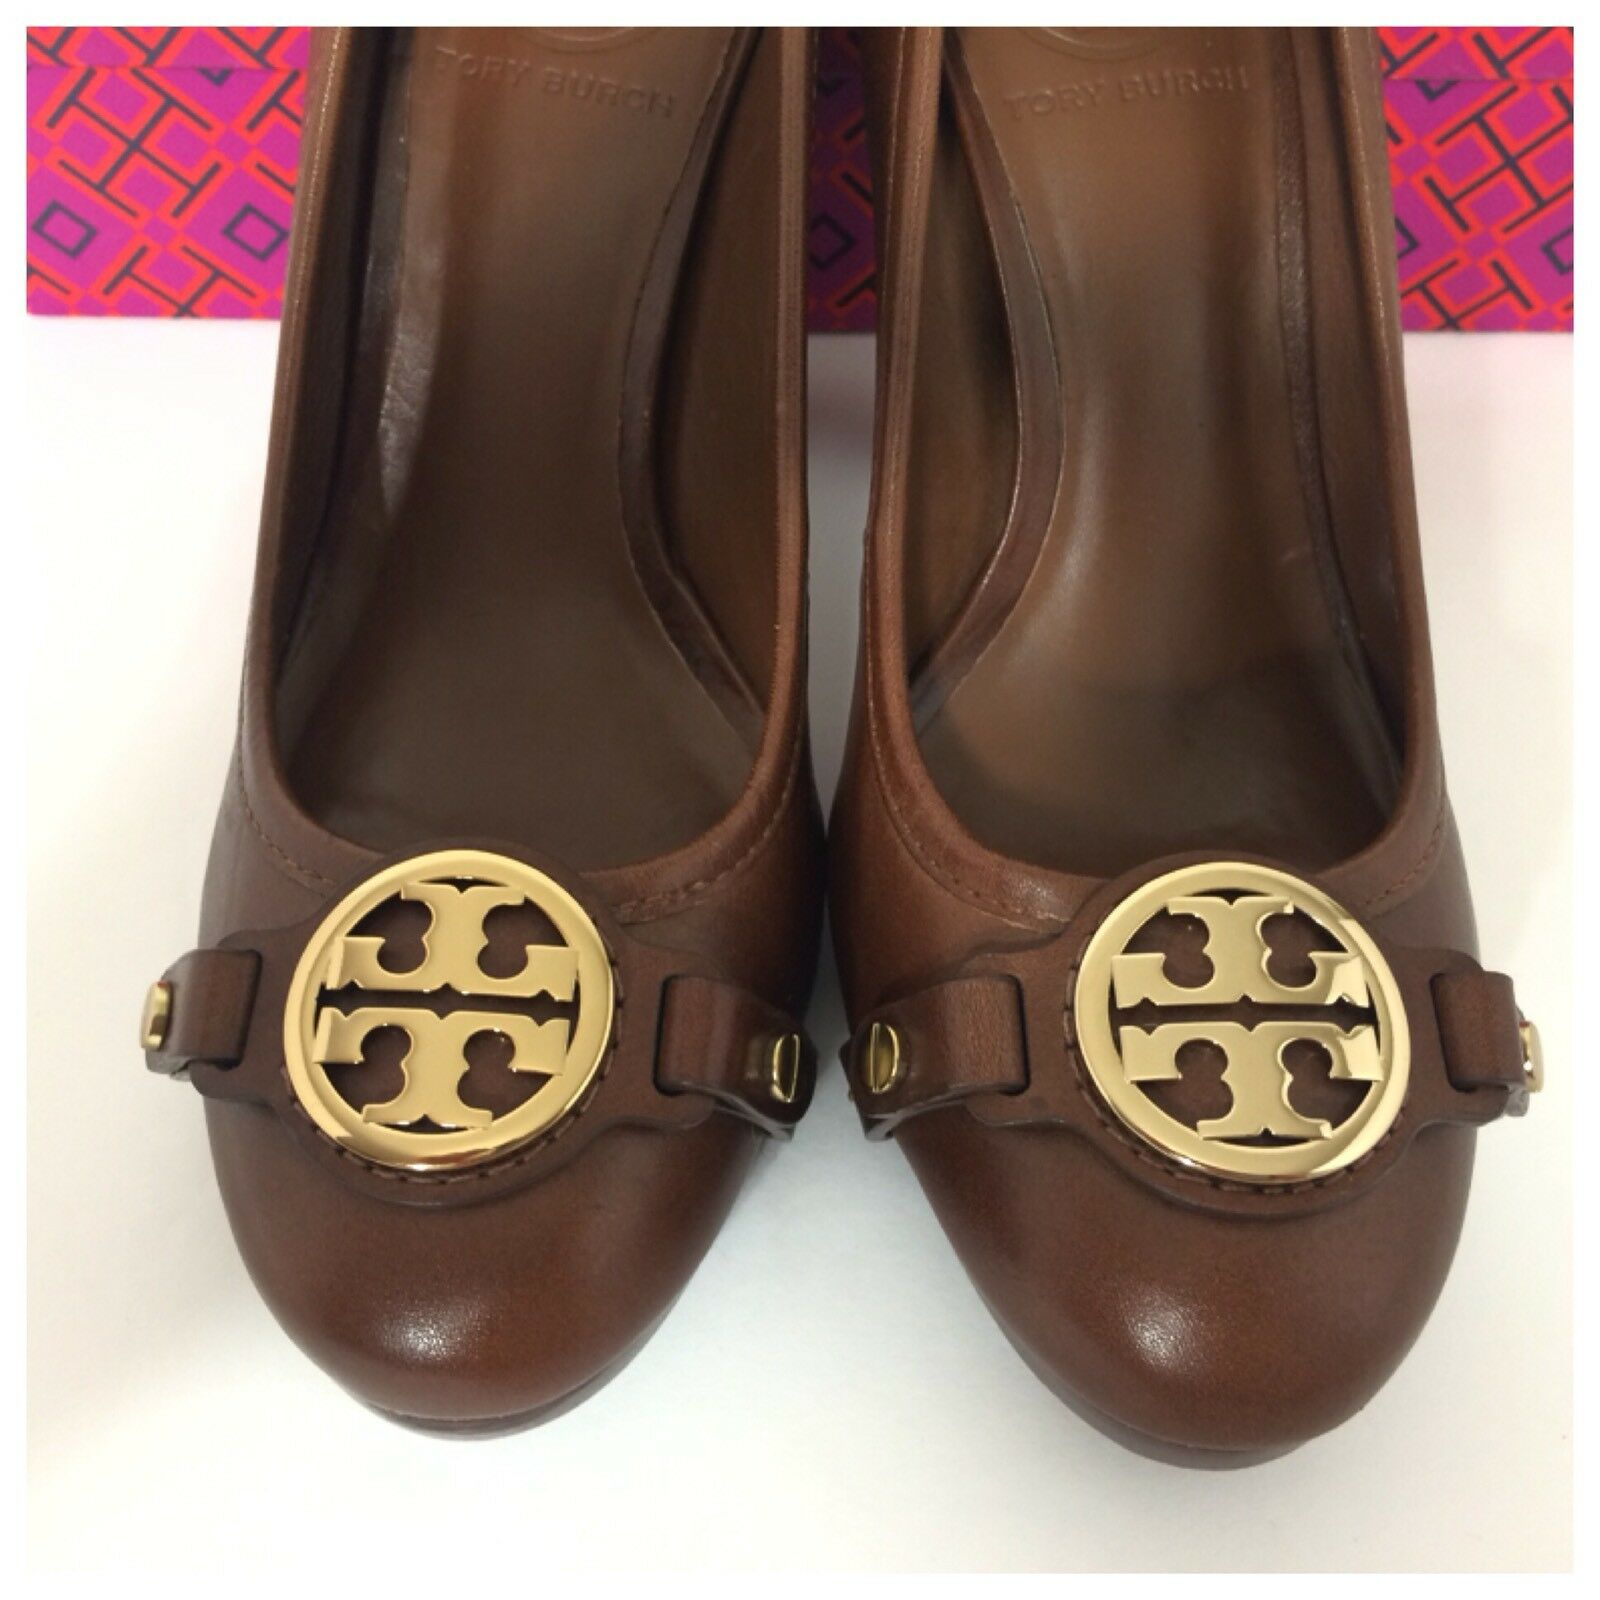 Tory Burch Size Calista Almond Brown Gold Logo Leather Pumps Size Burch 6.5 M  295 dcd44e